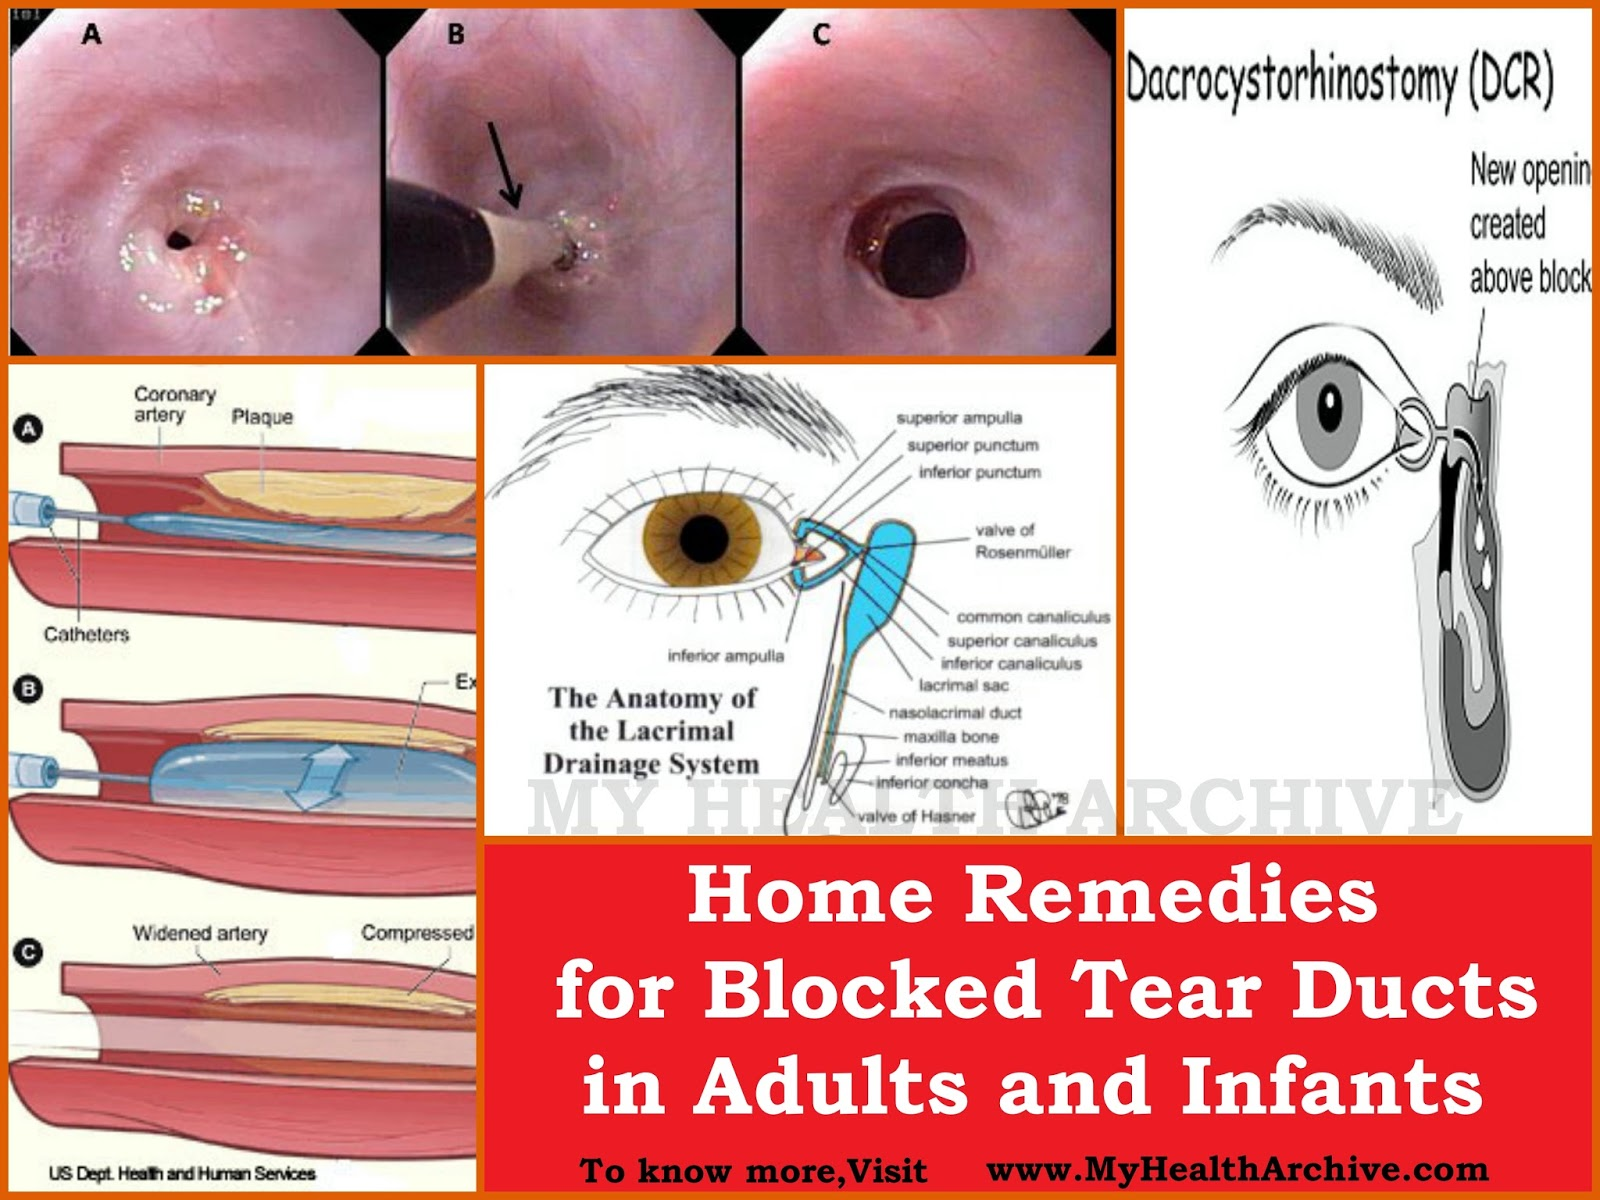 Remedies for Blocked Tear Ducts in Adults and Infants